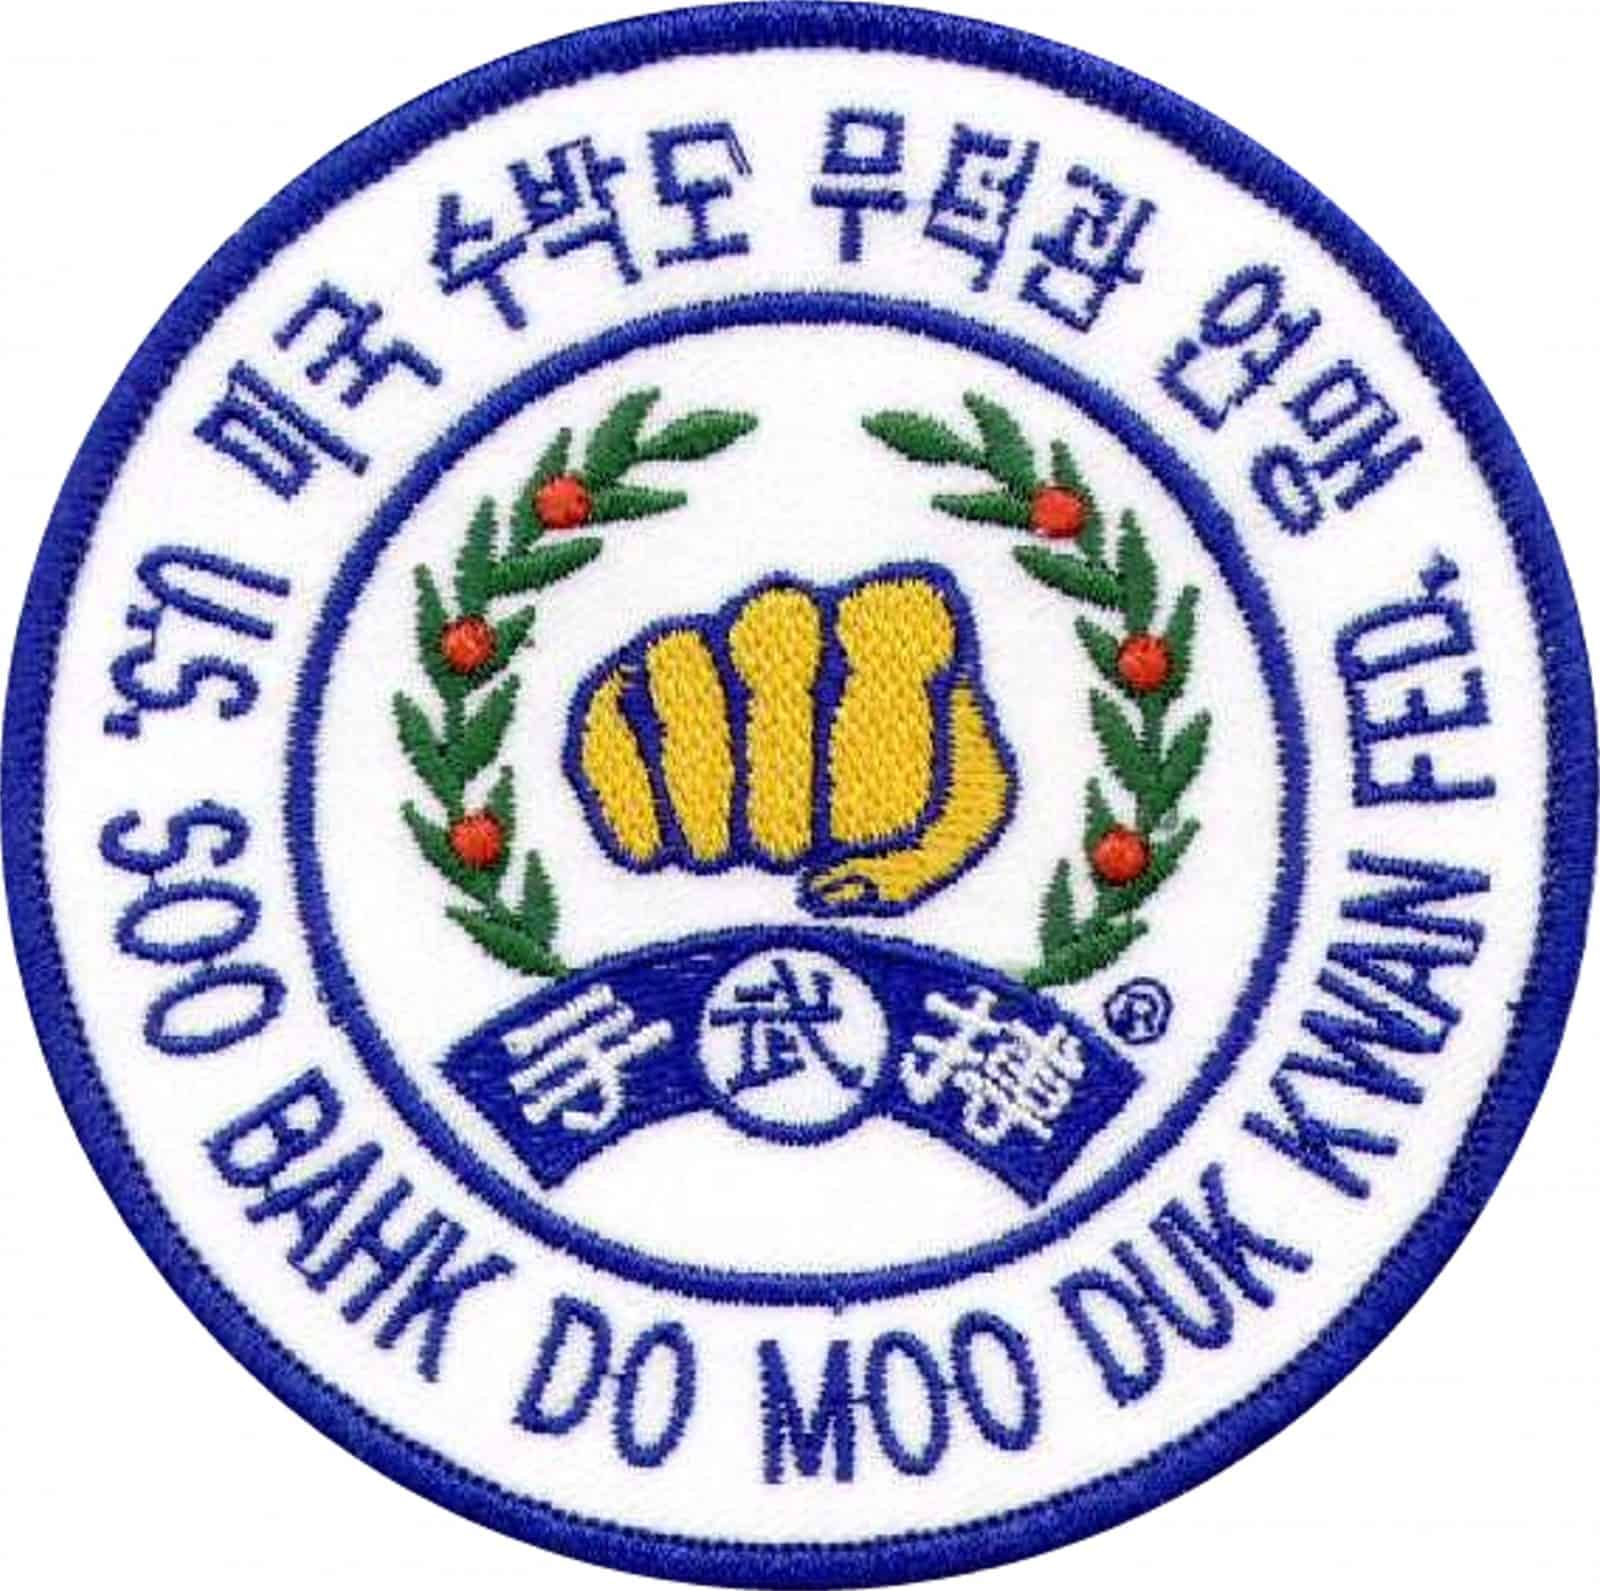 USA Federation Membership<br /><span style='font-family: arial, helvetica, sans-serif; font-size: 12pt; color: teal;'>Moo Duk Kwan Membership Opportunities</span>